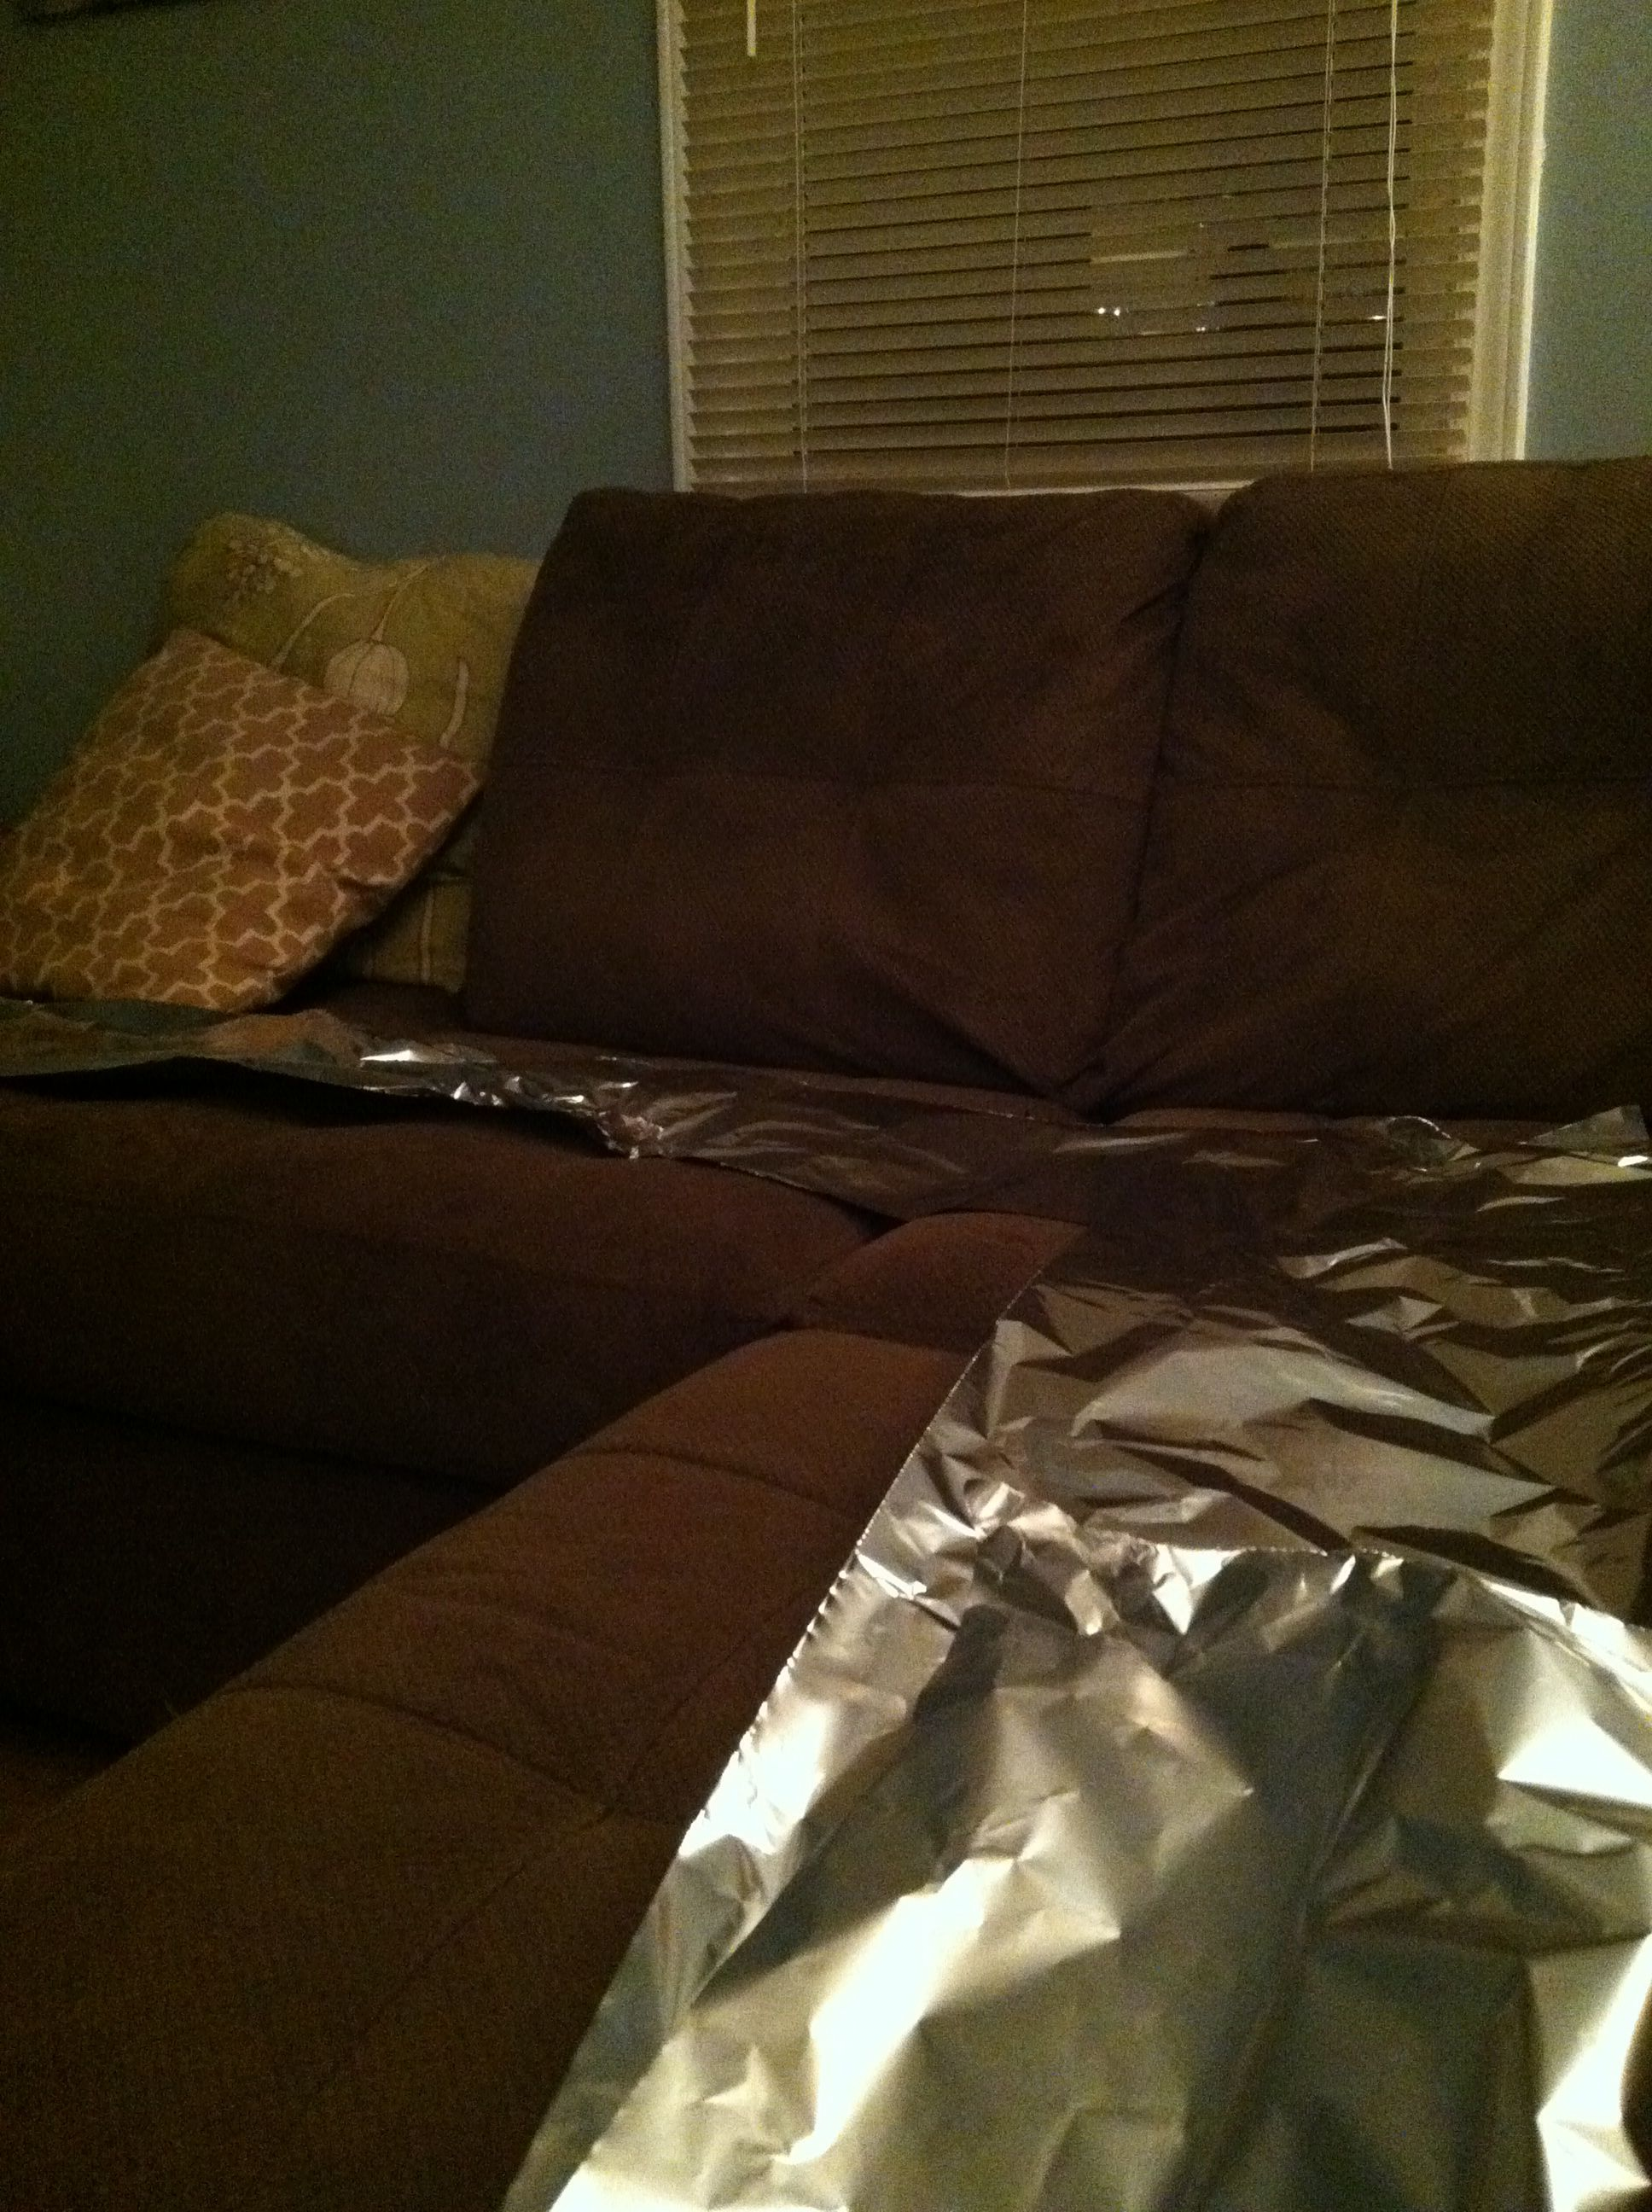 Blind Dog Jumps On Couch : blind, jumps, couch, Don't, Jumping, Couch?, Areas, Dog-proofed., Dogs,, Stuff,